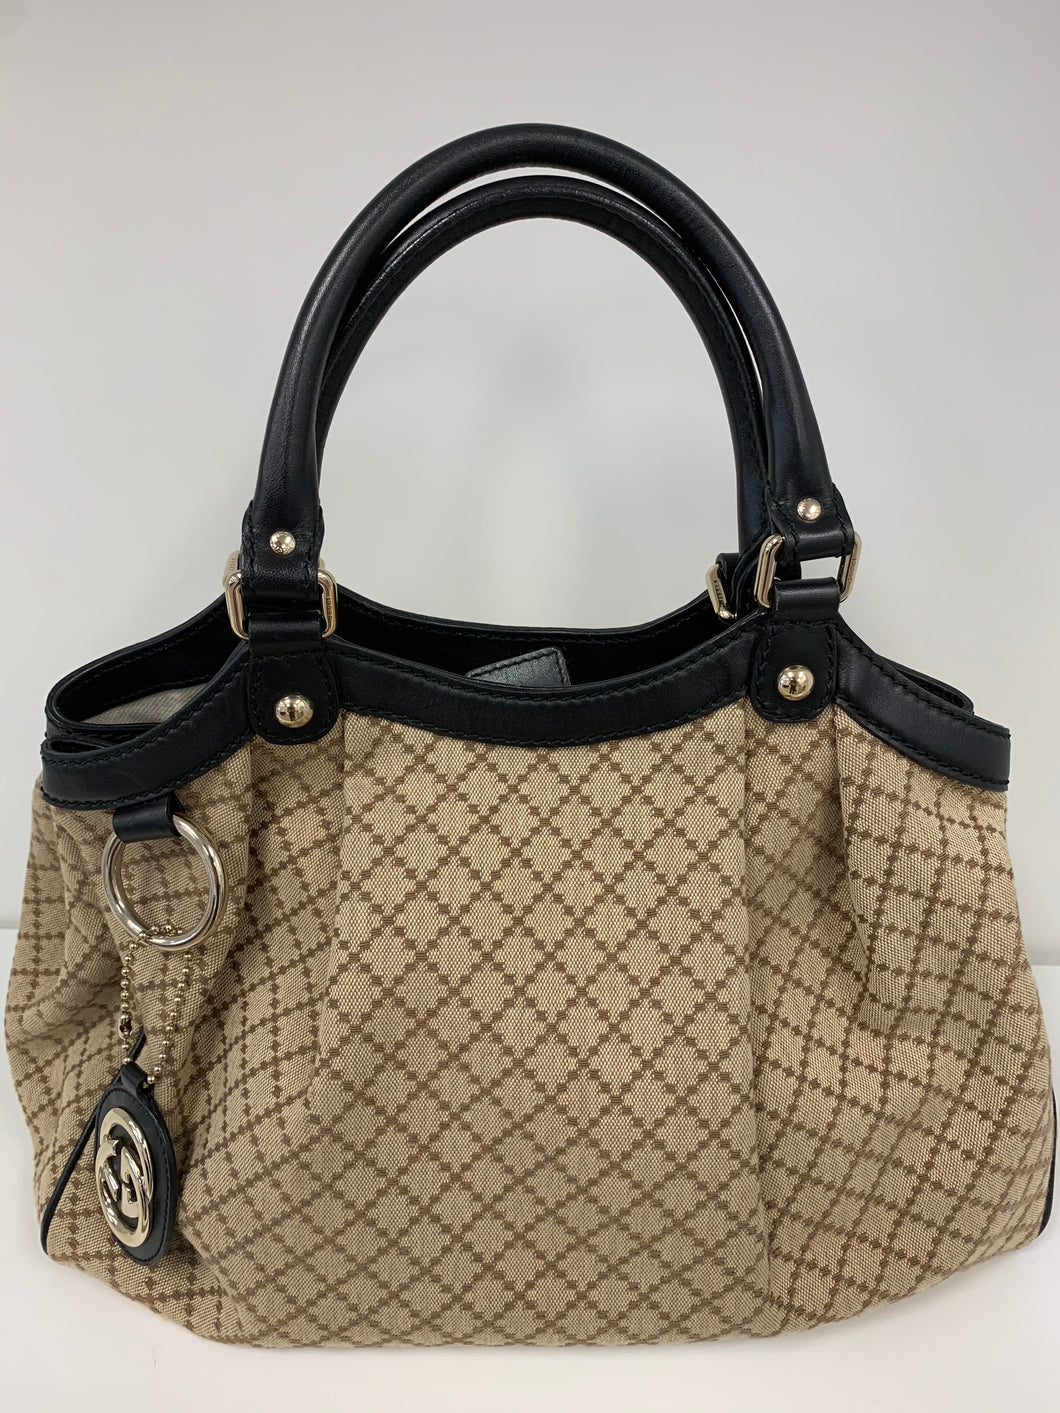 GUCCI Vintage Canvas Web Handbag